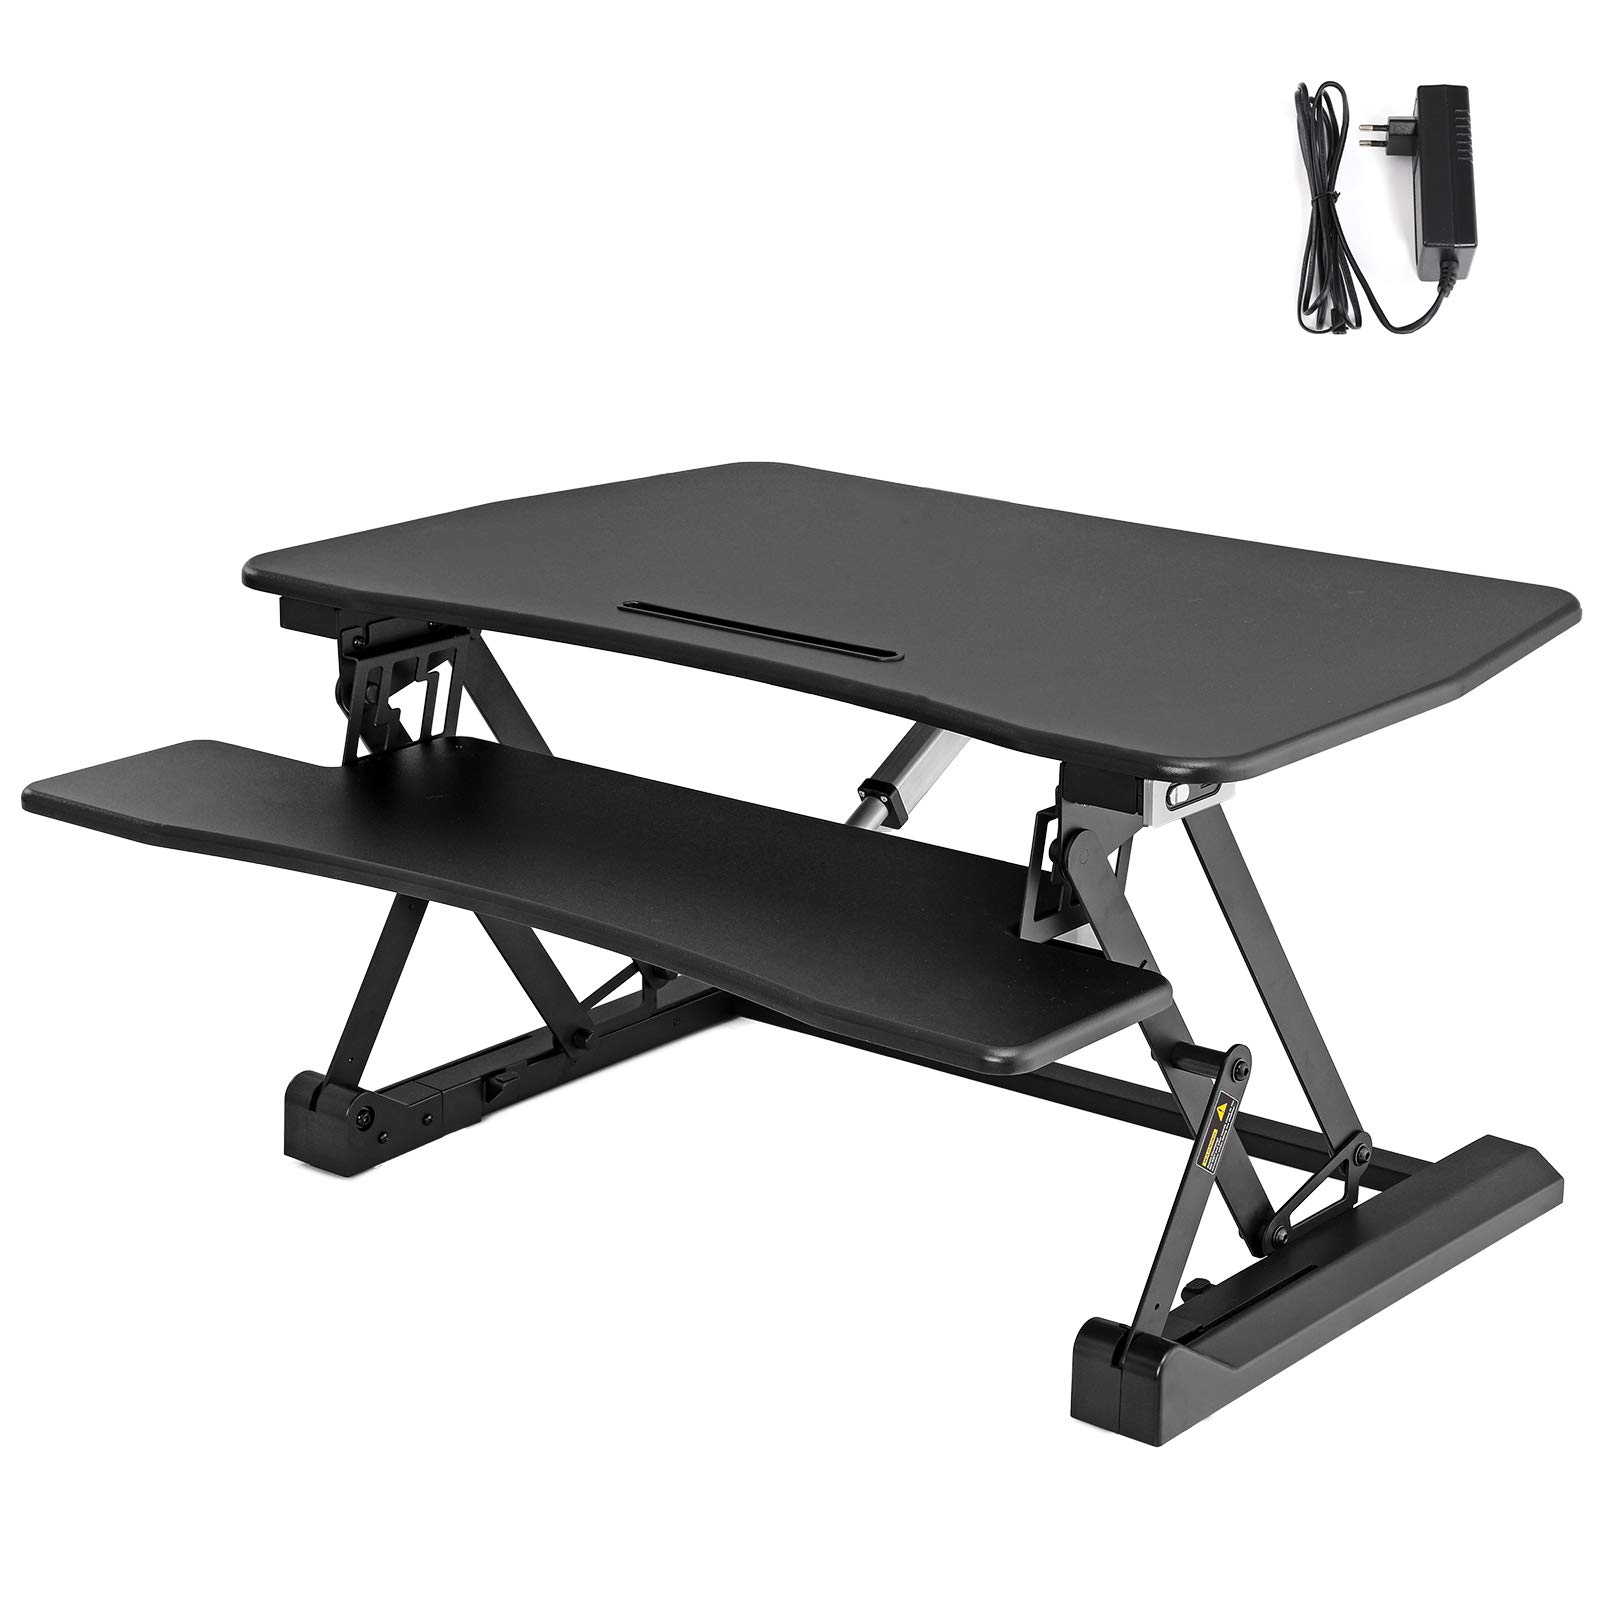 SONGMICS Electric Standing Desk Converter, 36'' Wide Sit to Stand Desk fits Dual Monitor, Height Adjustable Stand up Desk Computer Riser with Quick Release Keyboard Tray, for Home Office ULSD77BK